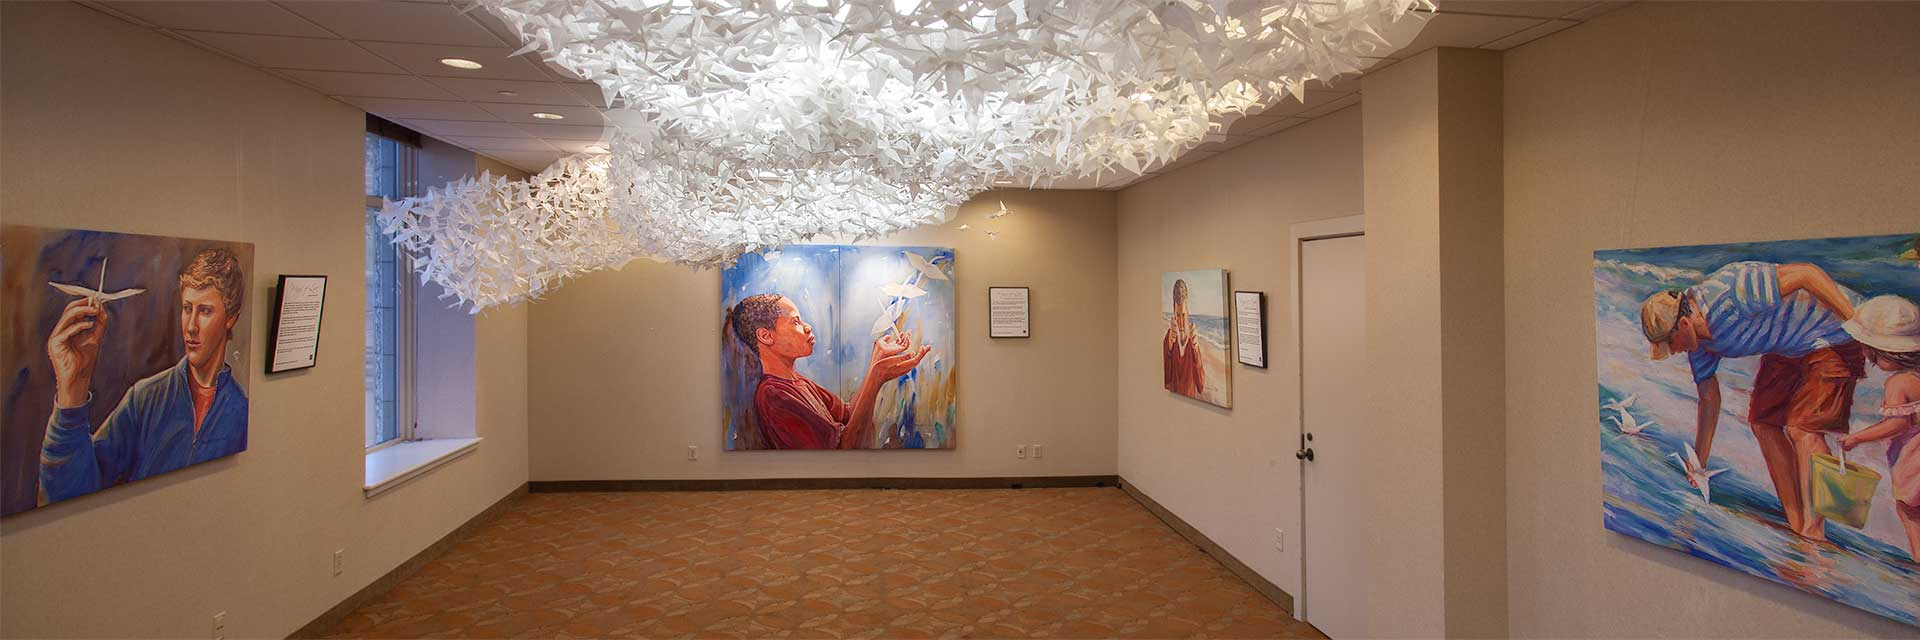 ArtPrize 2013: Wing and a Prayer exhibit